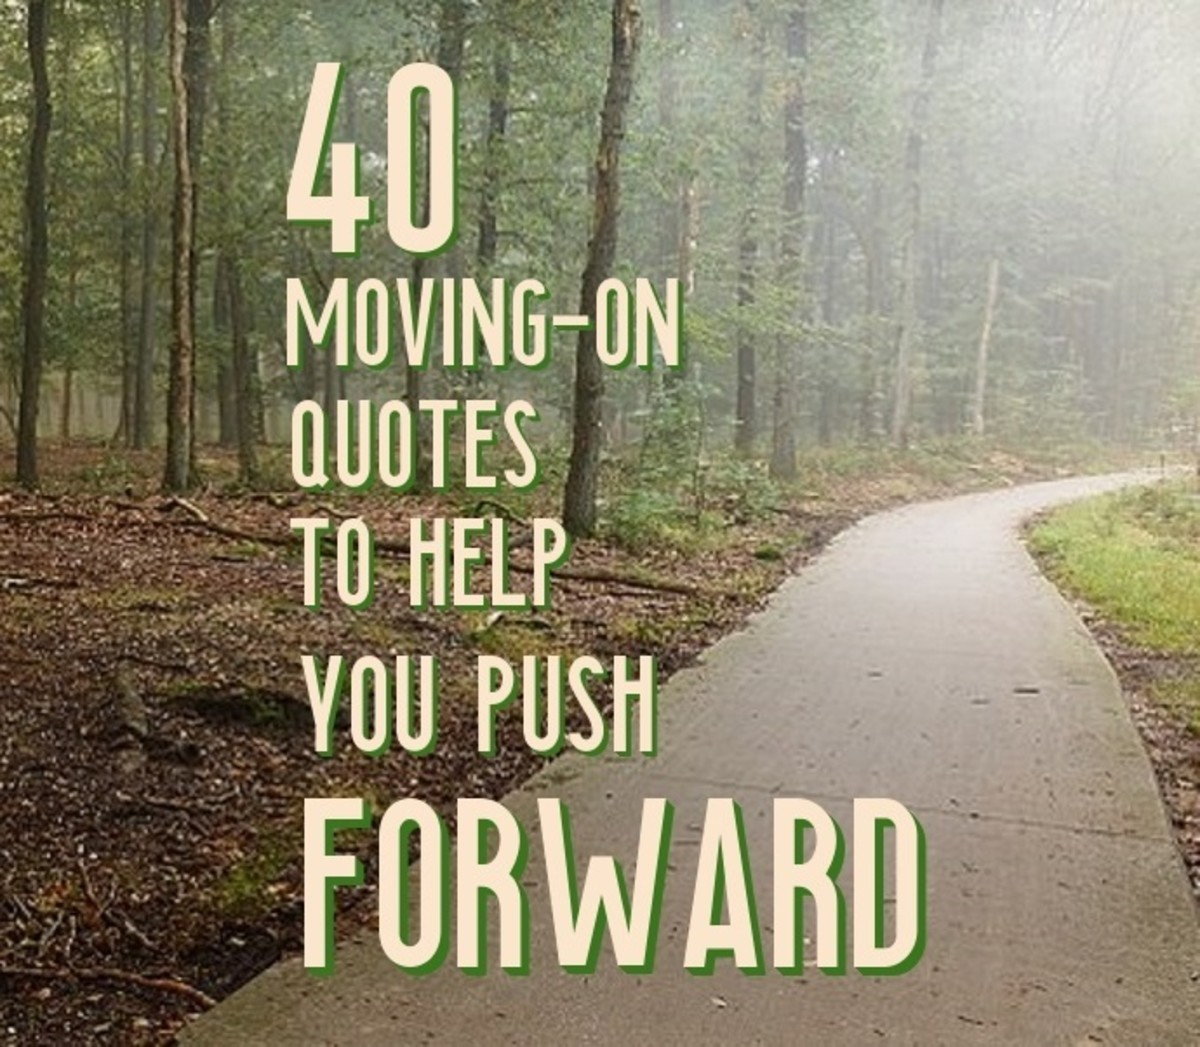 40 Moving On Quotes to Help You Push Forward